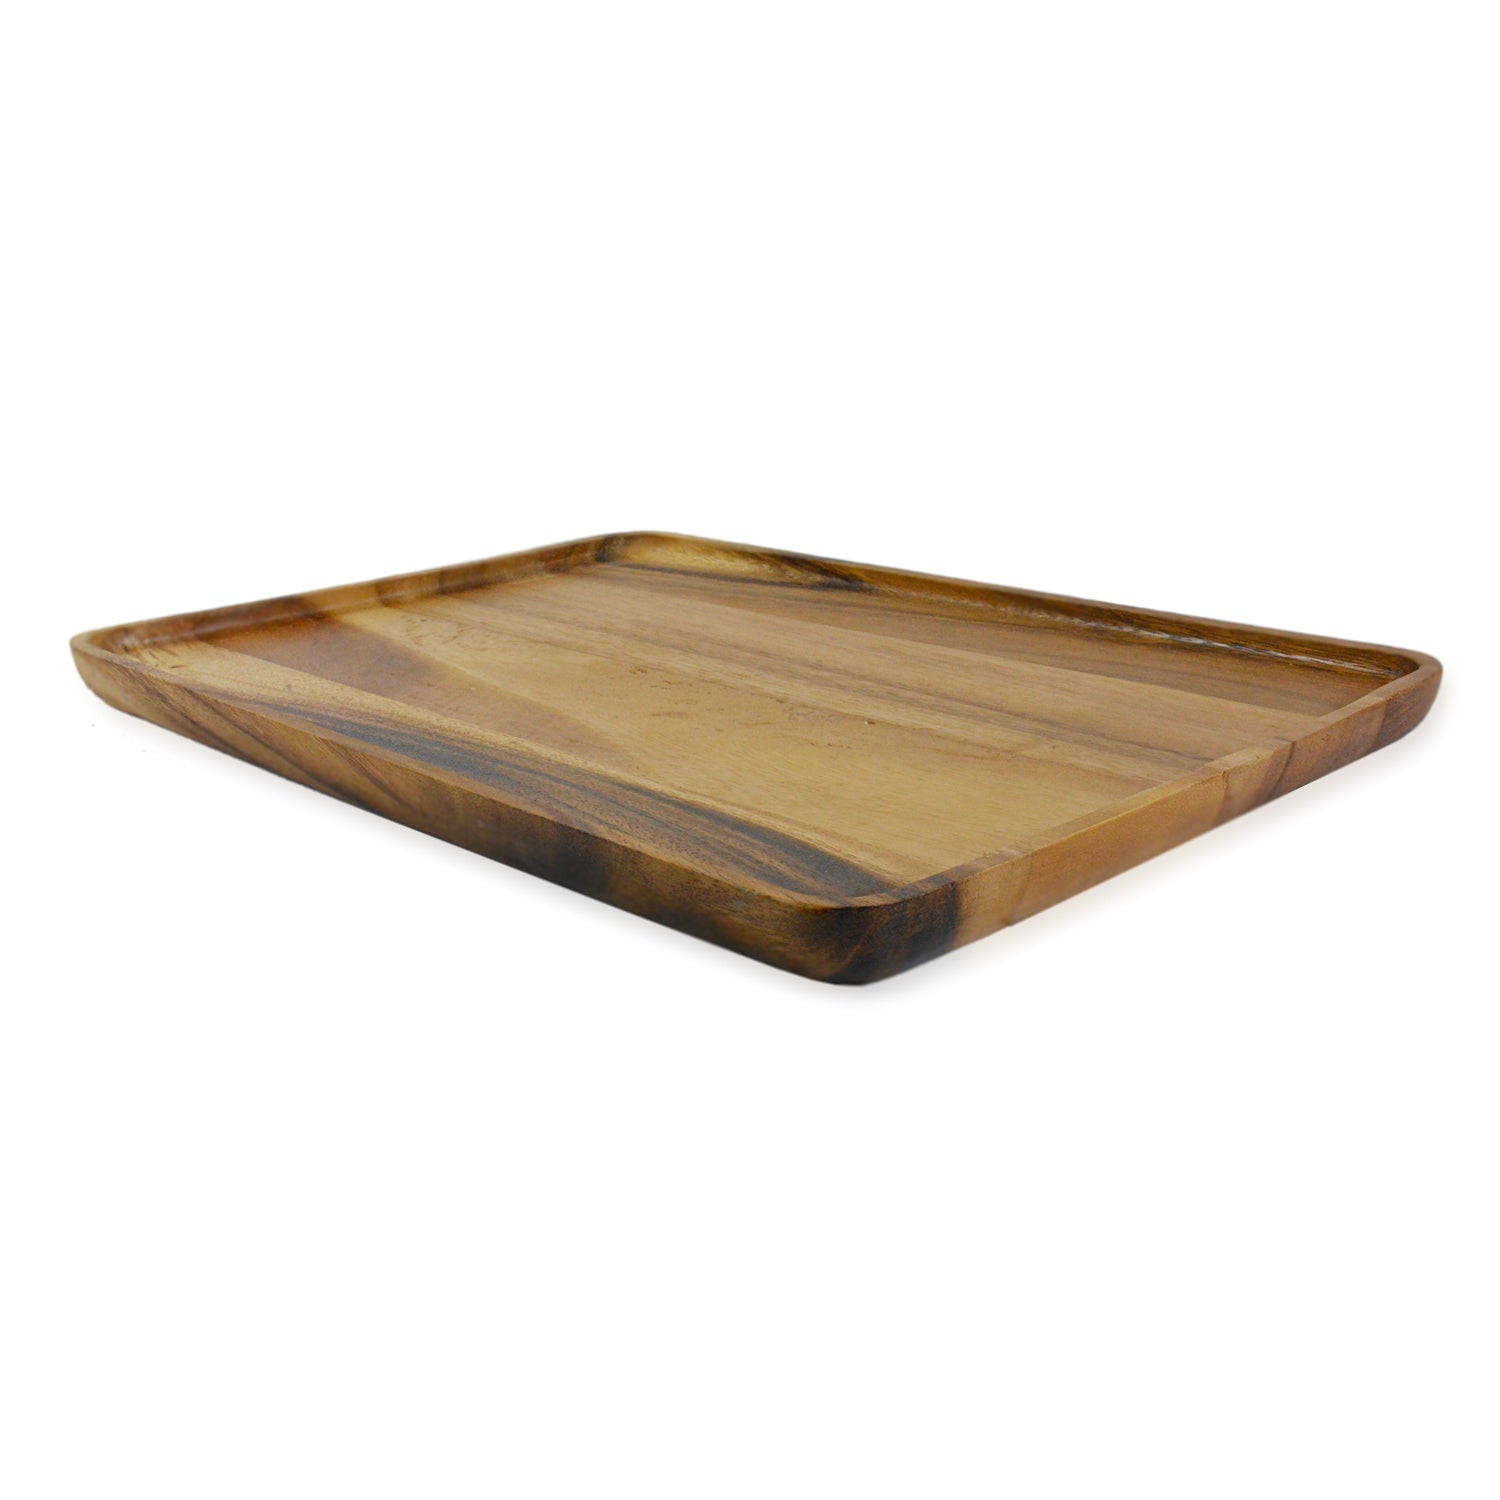 roro 13.5 Inch Acacia Wood Rectangular Serving Tray